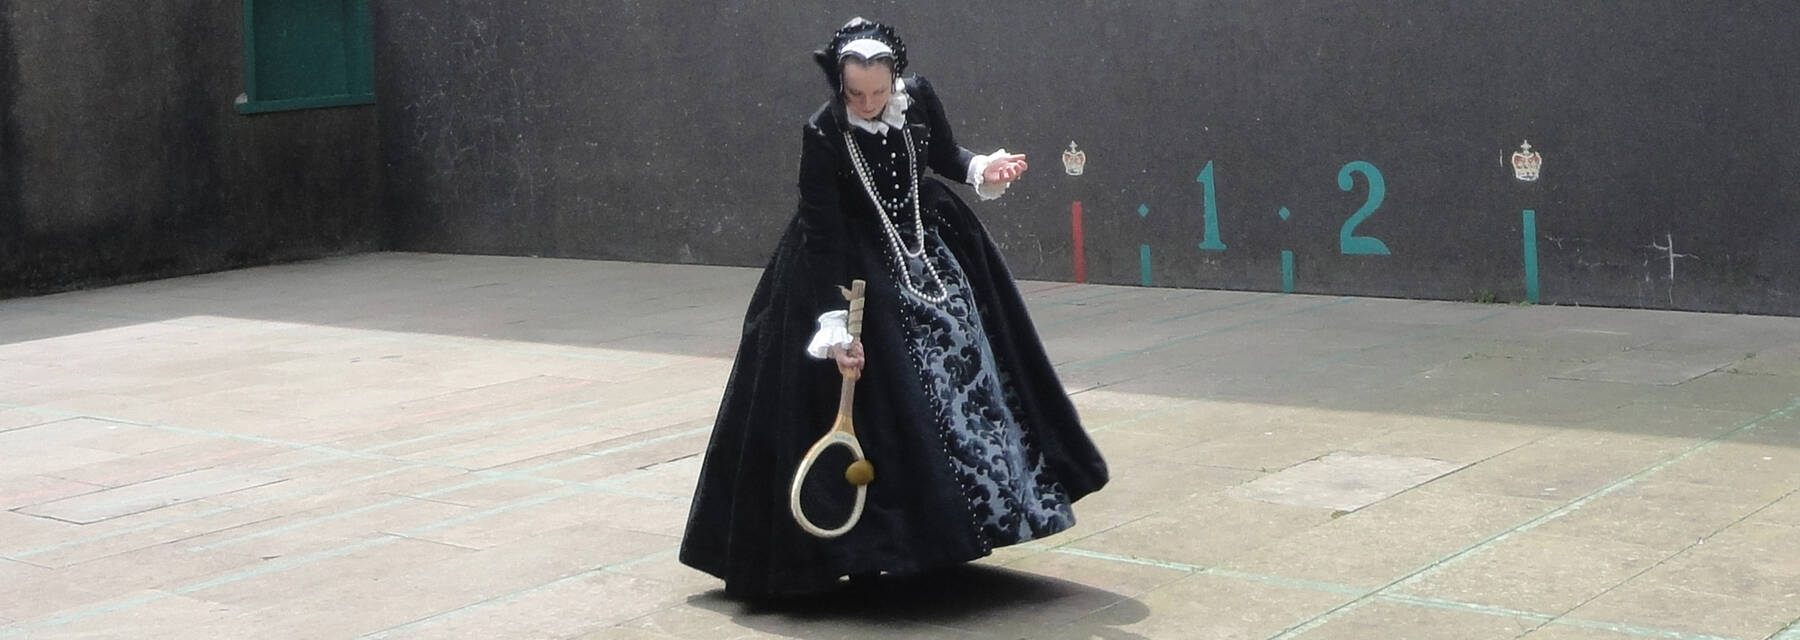 Woman in Renaissance costume playing tennis in Falkland Palace court